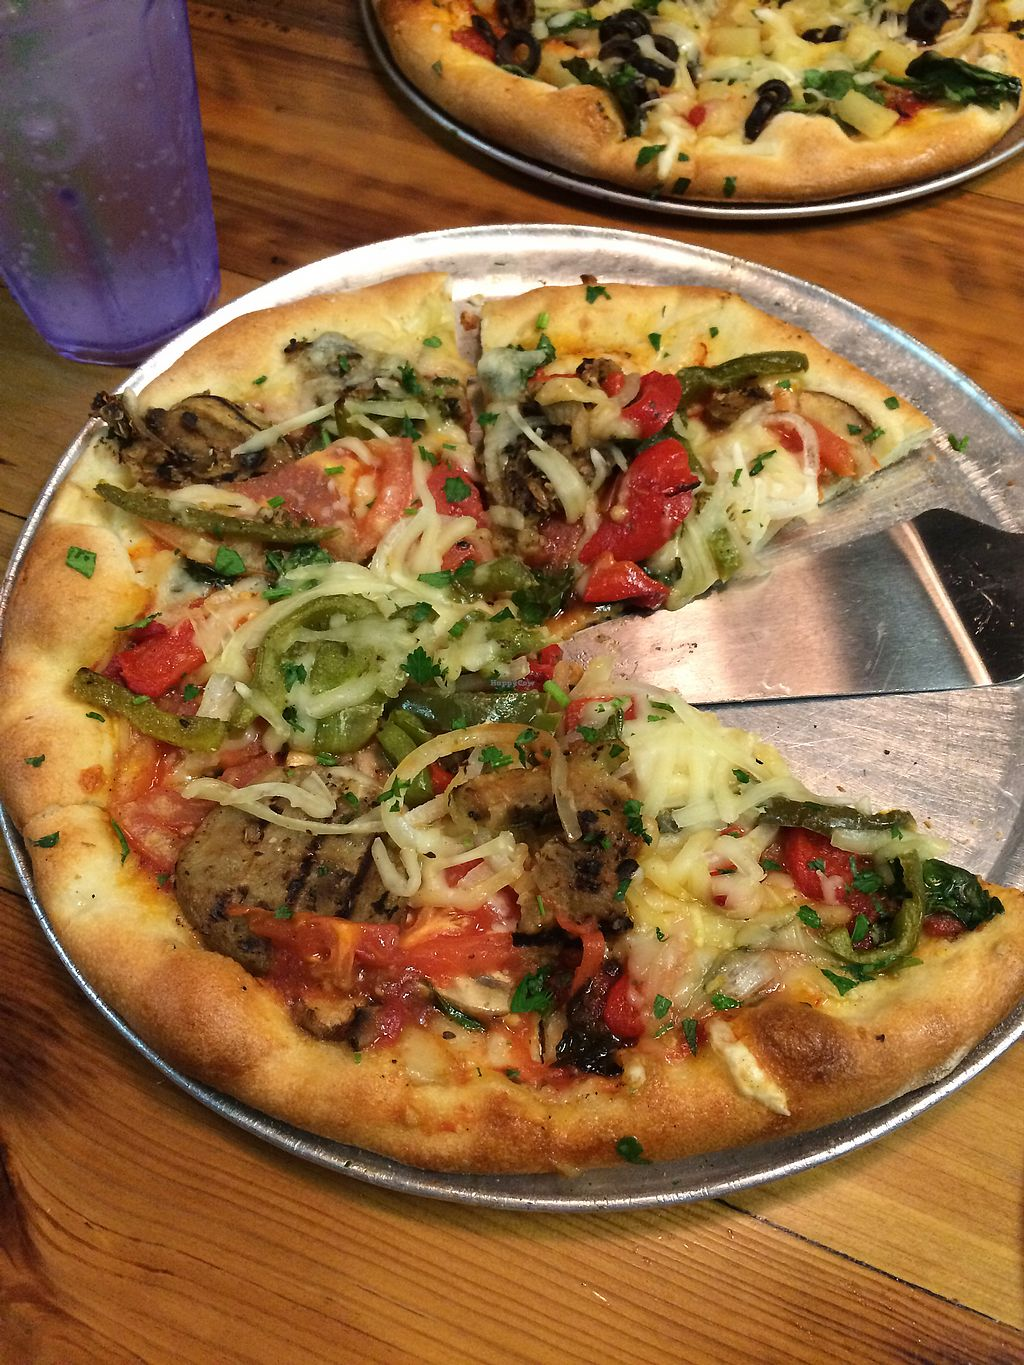 """Photo of Pioneers Pizza  by <a href=""""/members/profile/Mike%20Silver"""">Mike Silver</a> <br/>Vegan personal pie! <br/> January 20, 2018  - <a href='/contact/abuse/image/69890/348624'>Report</a>"""